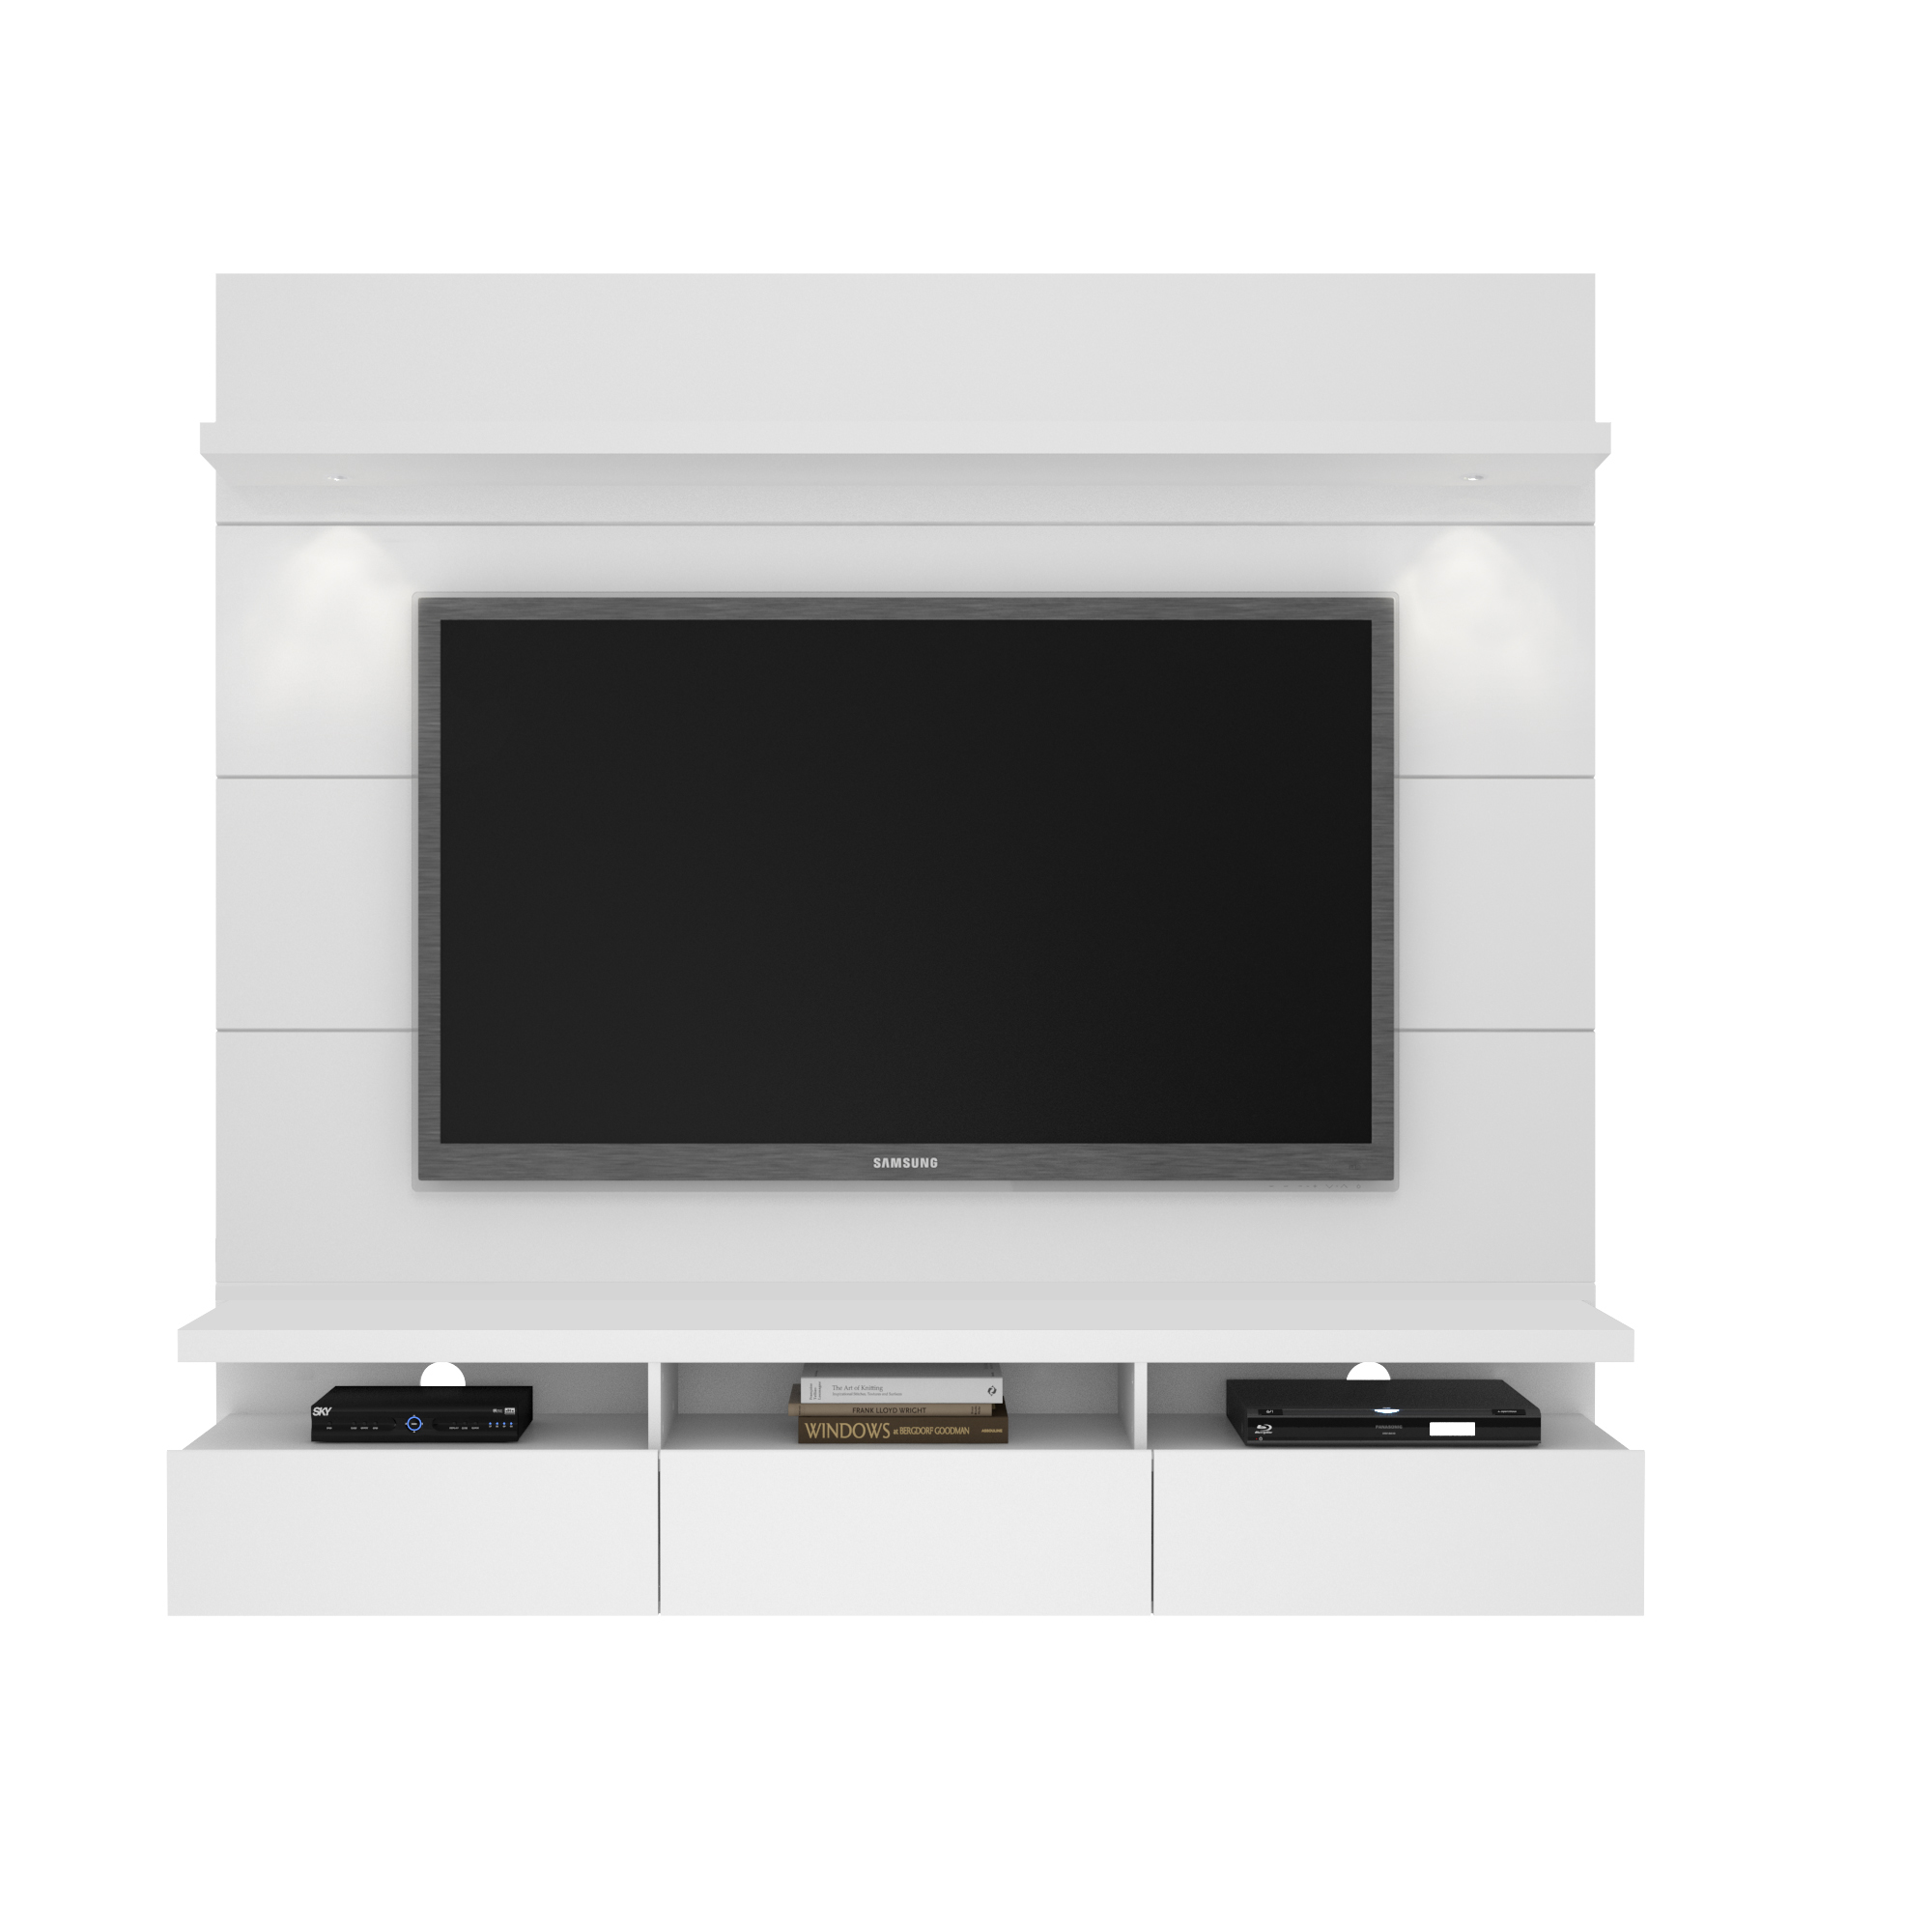 50 Images Of Modern Floating Wall Theater Entertainment: Cabrini White Gloss 1.8 Floating Wall Theater